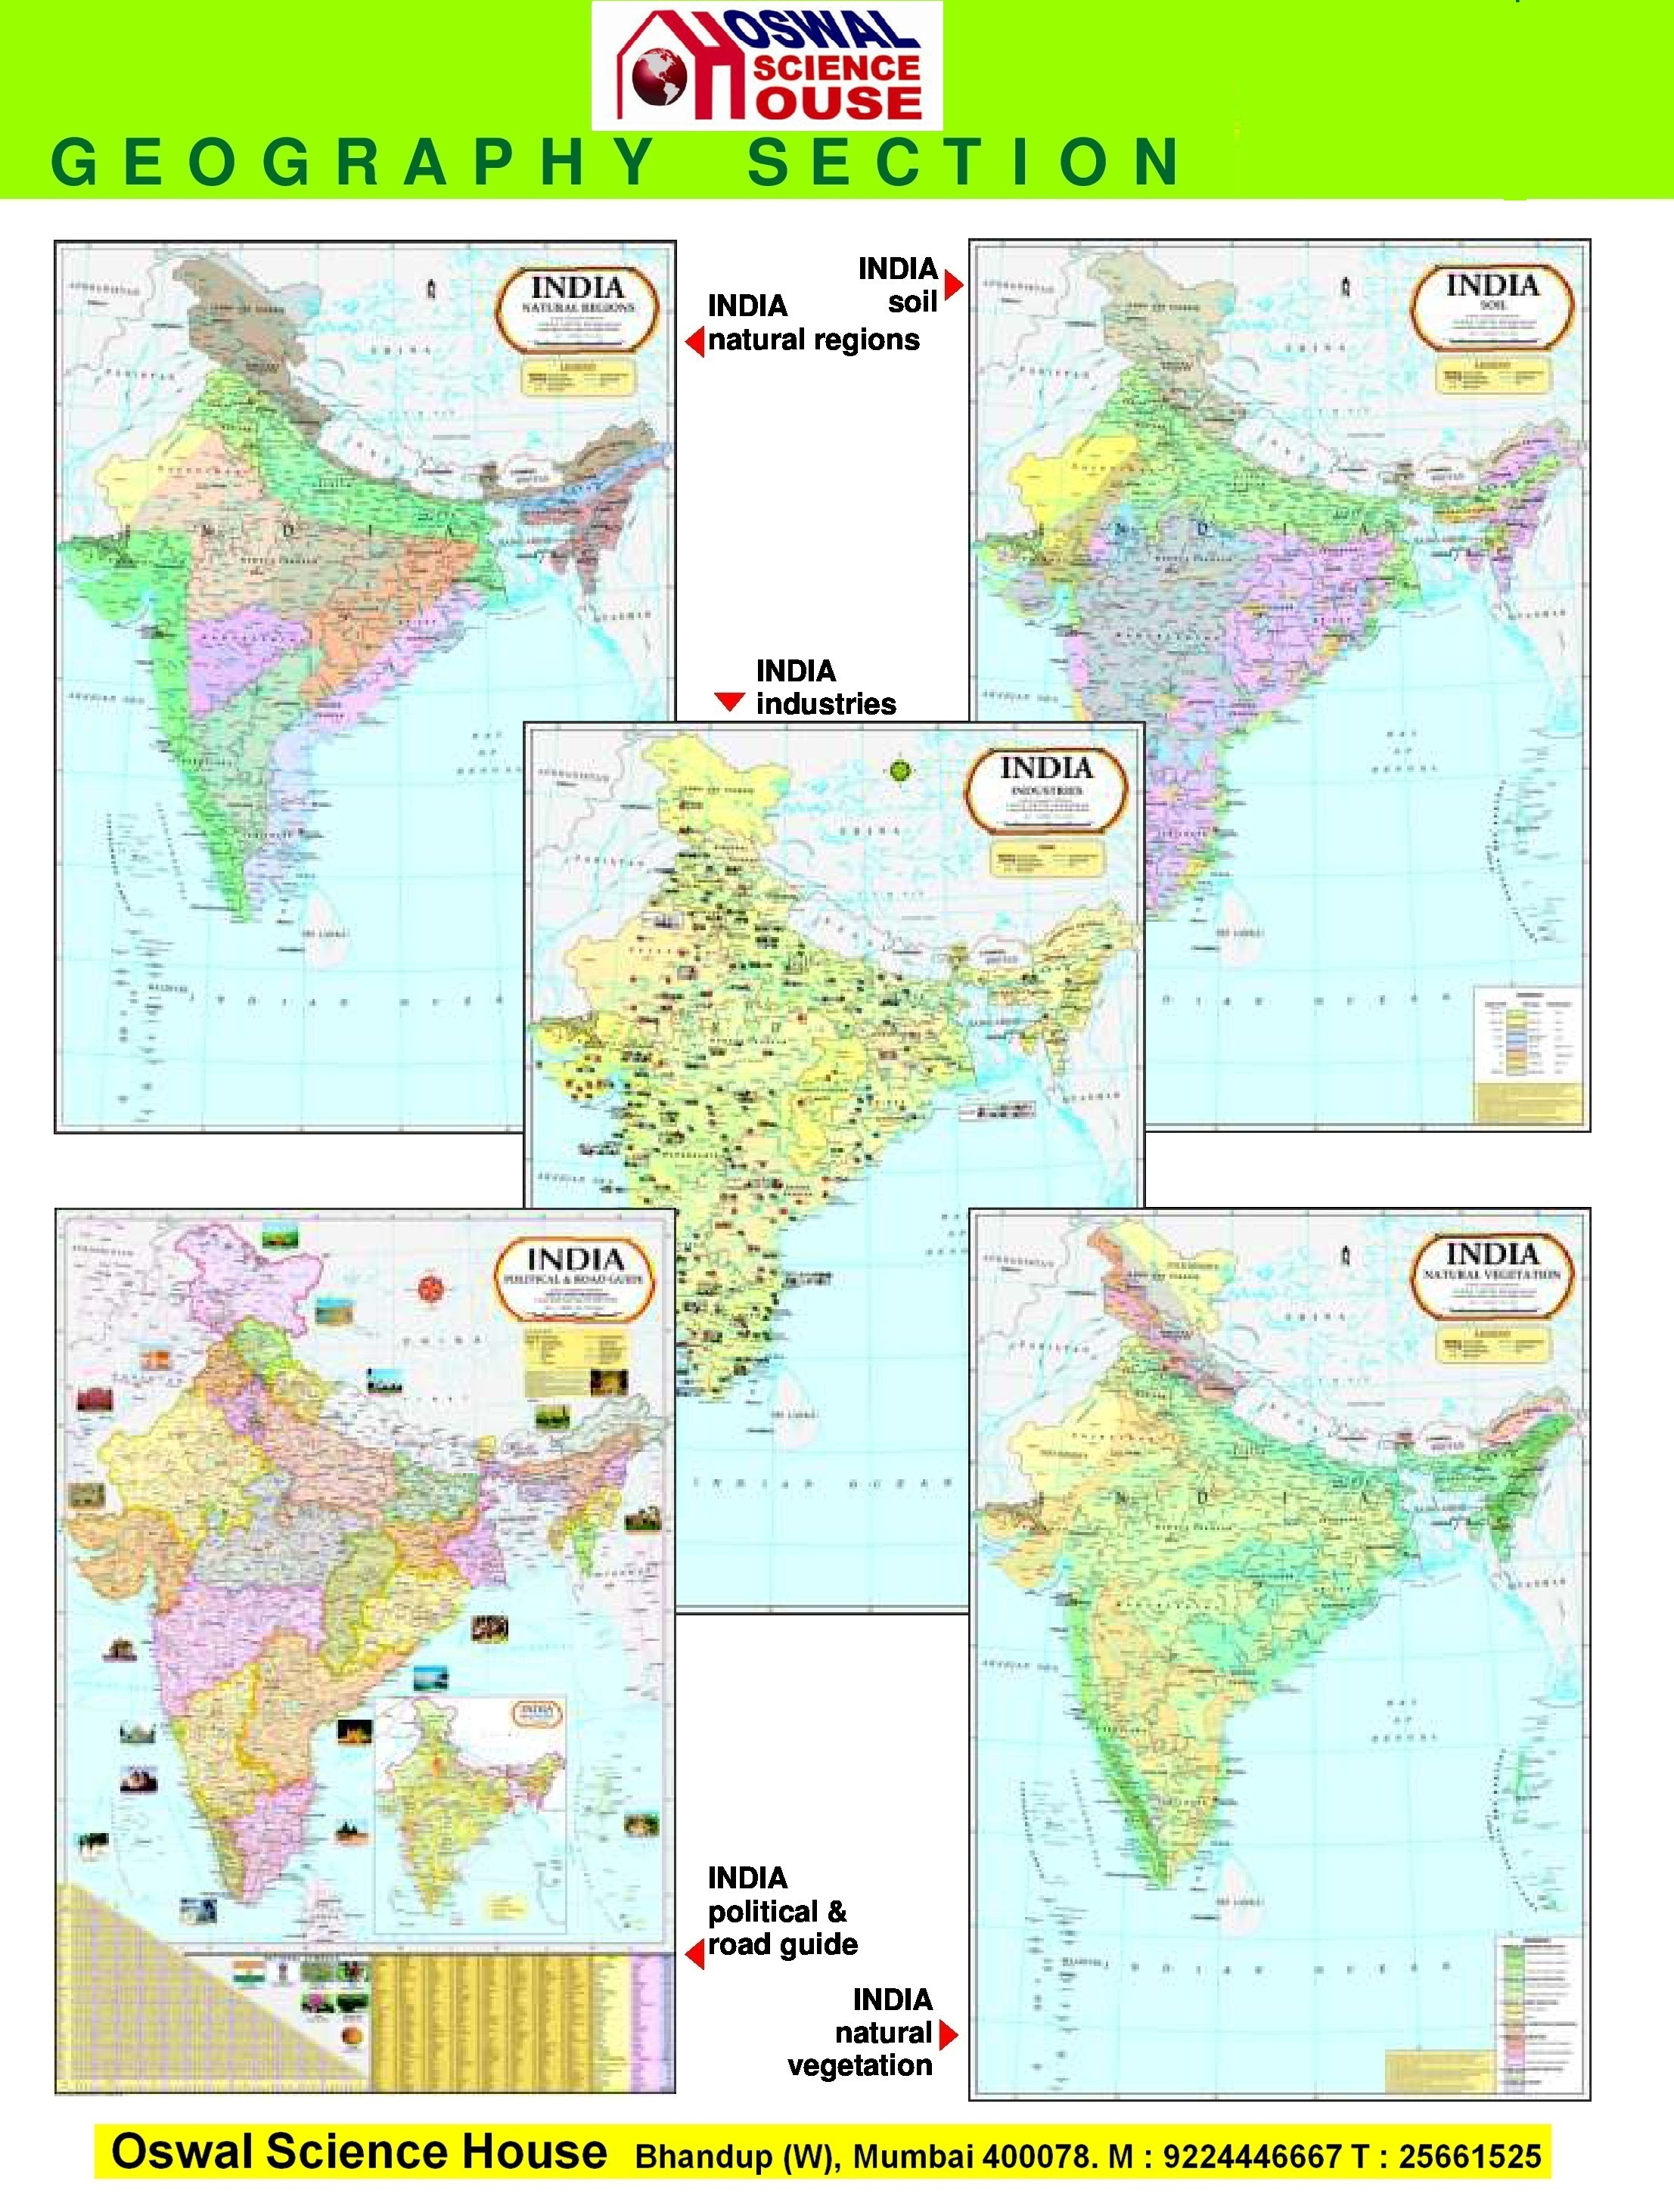 Oswal science house laminated charts comparative wall atlas maps gumiabroncs Image collections